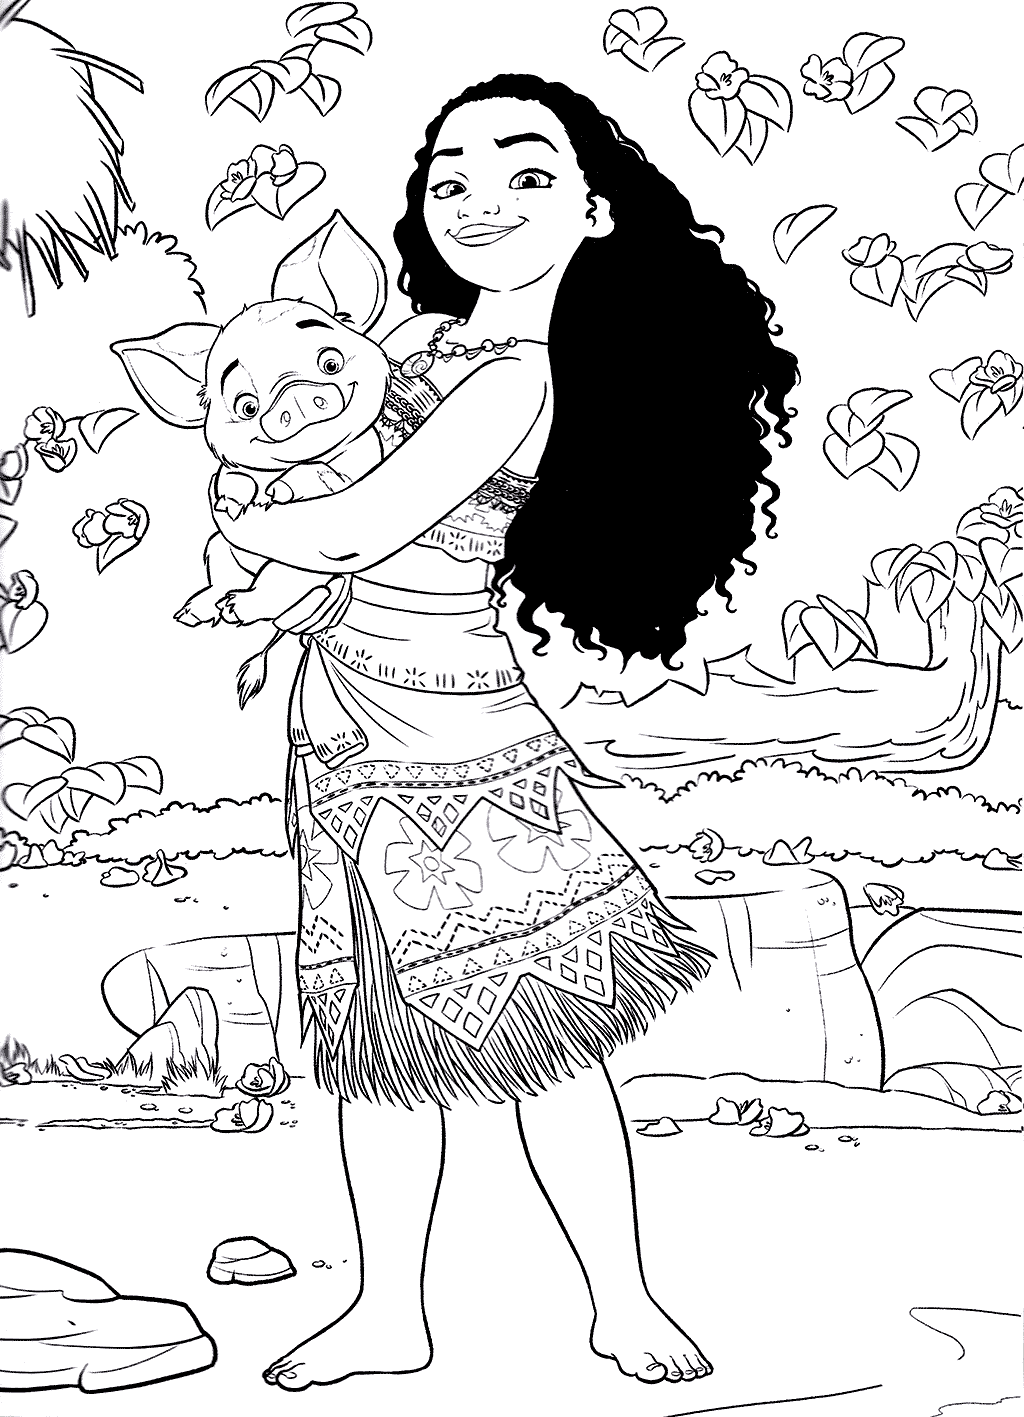 Moana Holding Piglet Moana Coloring Moana Coloring Pages Disney Coloring Pages